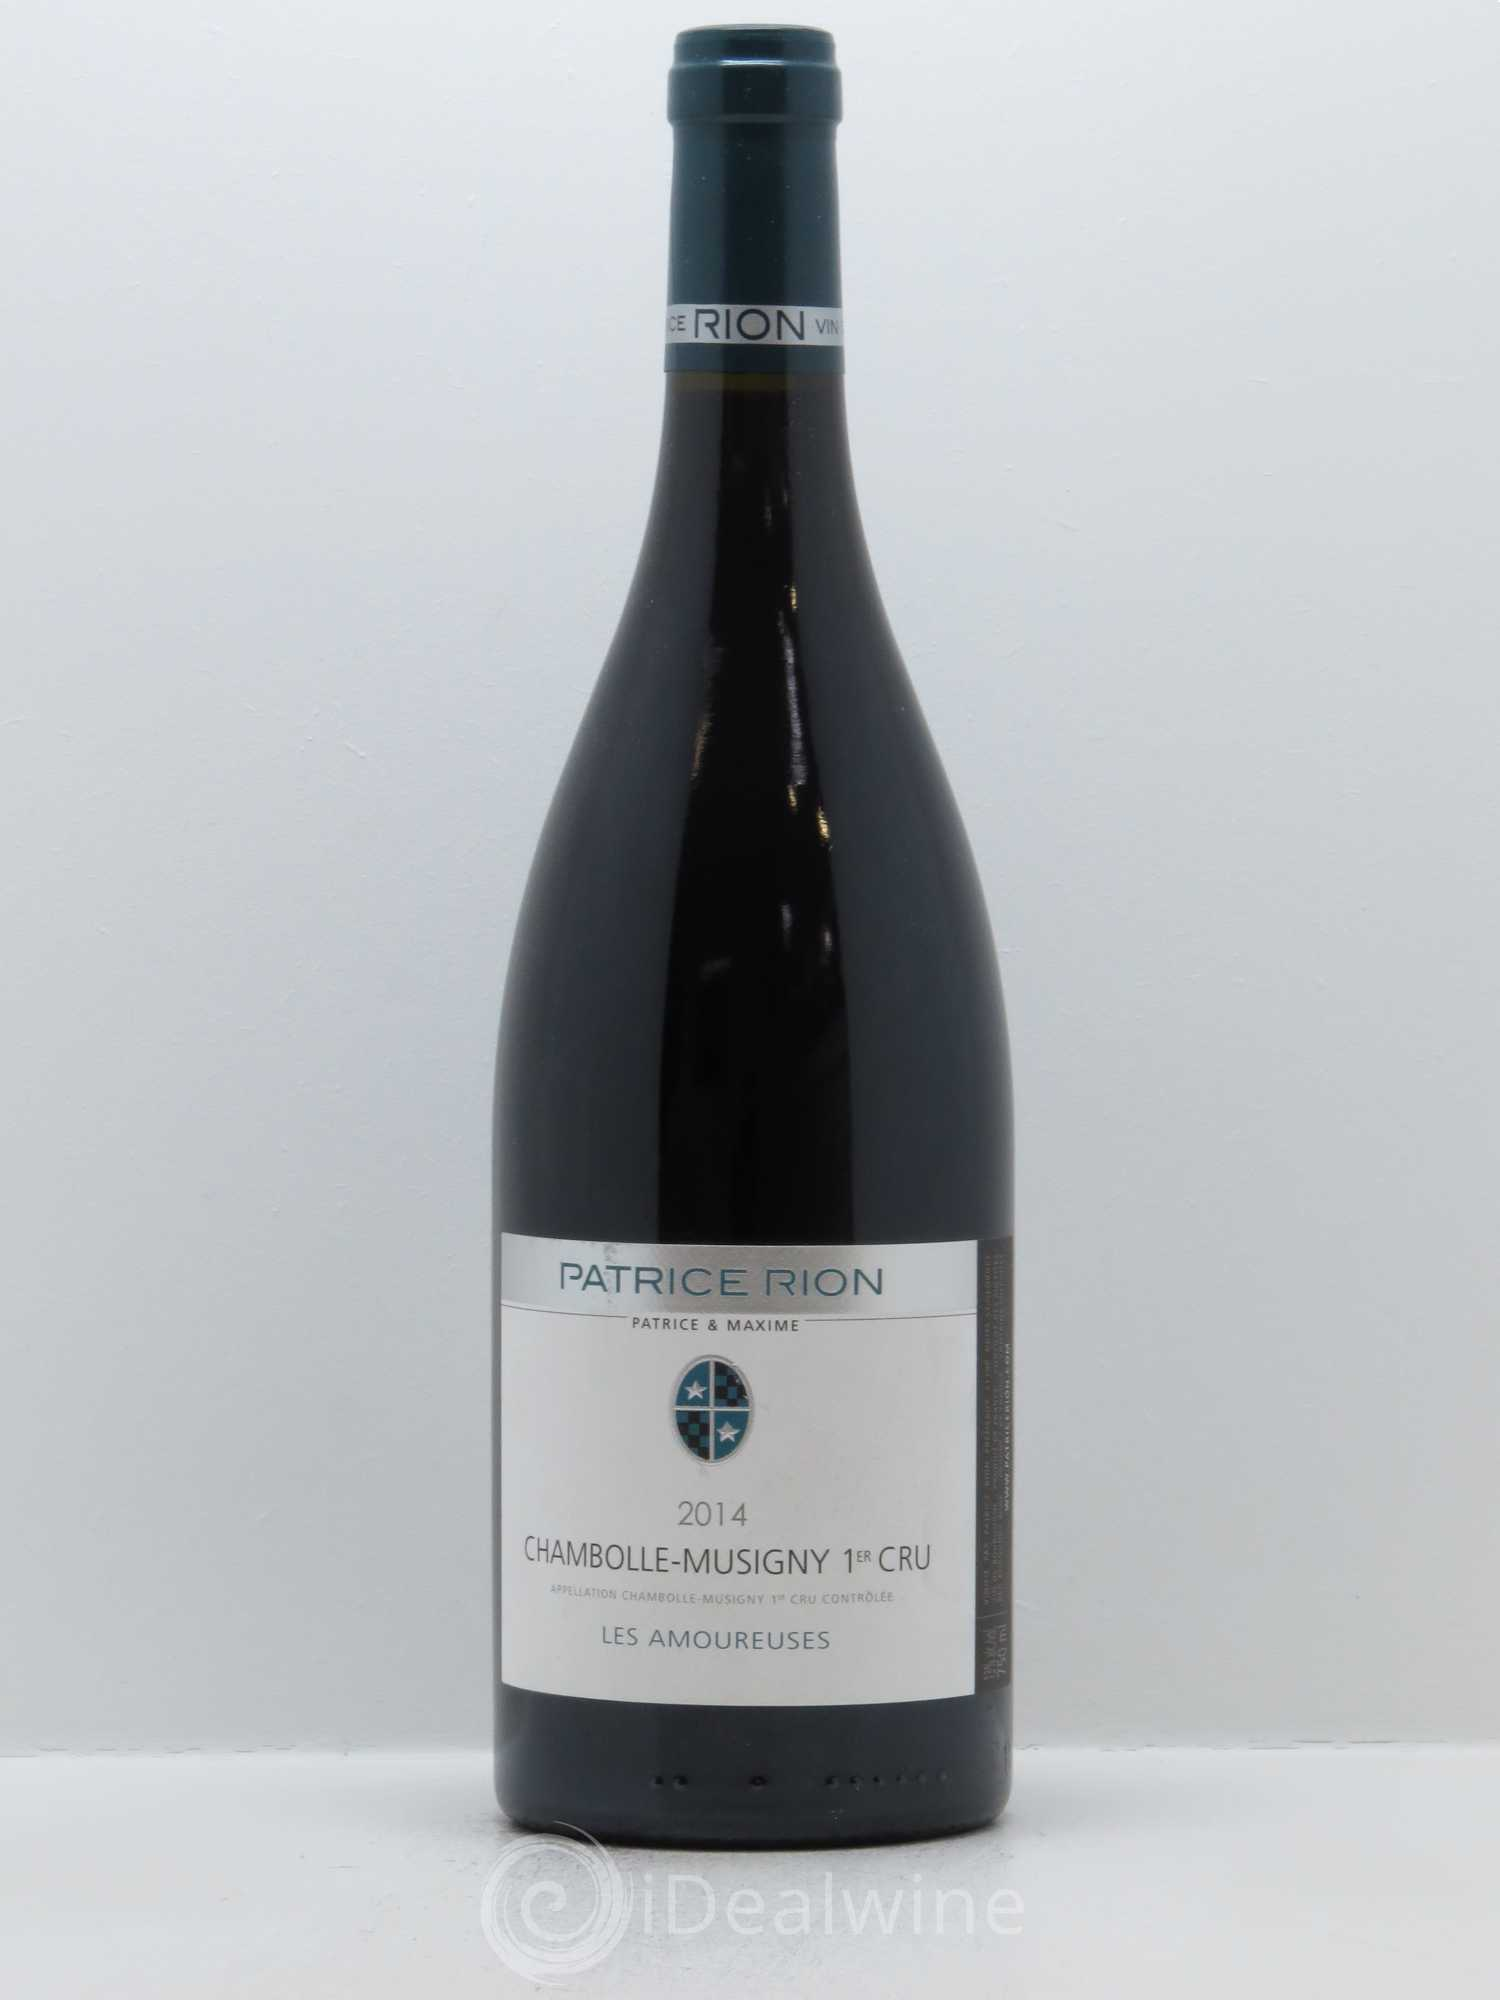 Chambolle-Musigny 1er Cru Les Amoureuses Patrice Rion (Domaine)